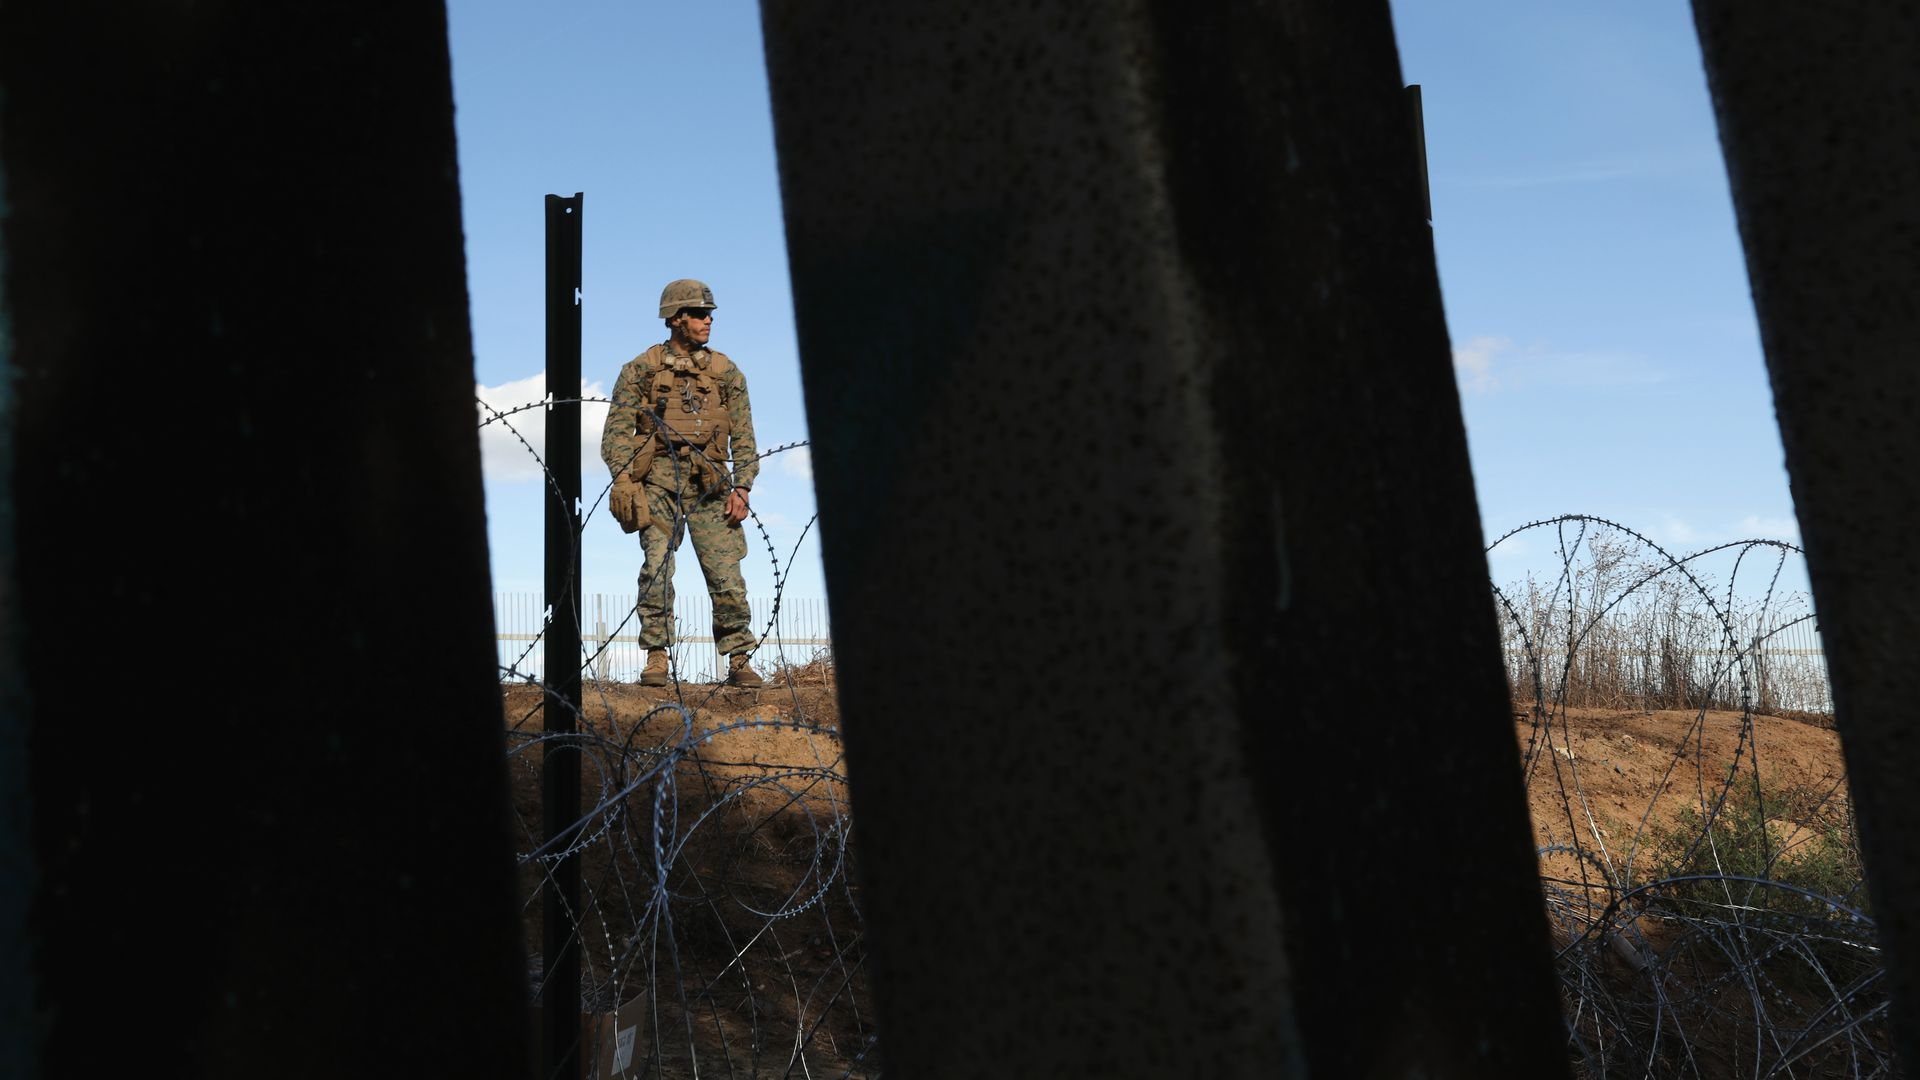 In this image, a Marine is seen in the distance between two fence poles that are close up against the camera. The clear sky is behind the Marine, who is in full uniform.